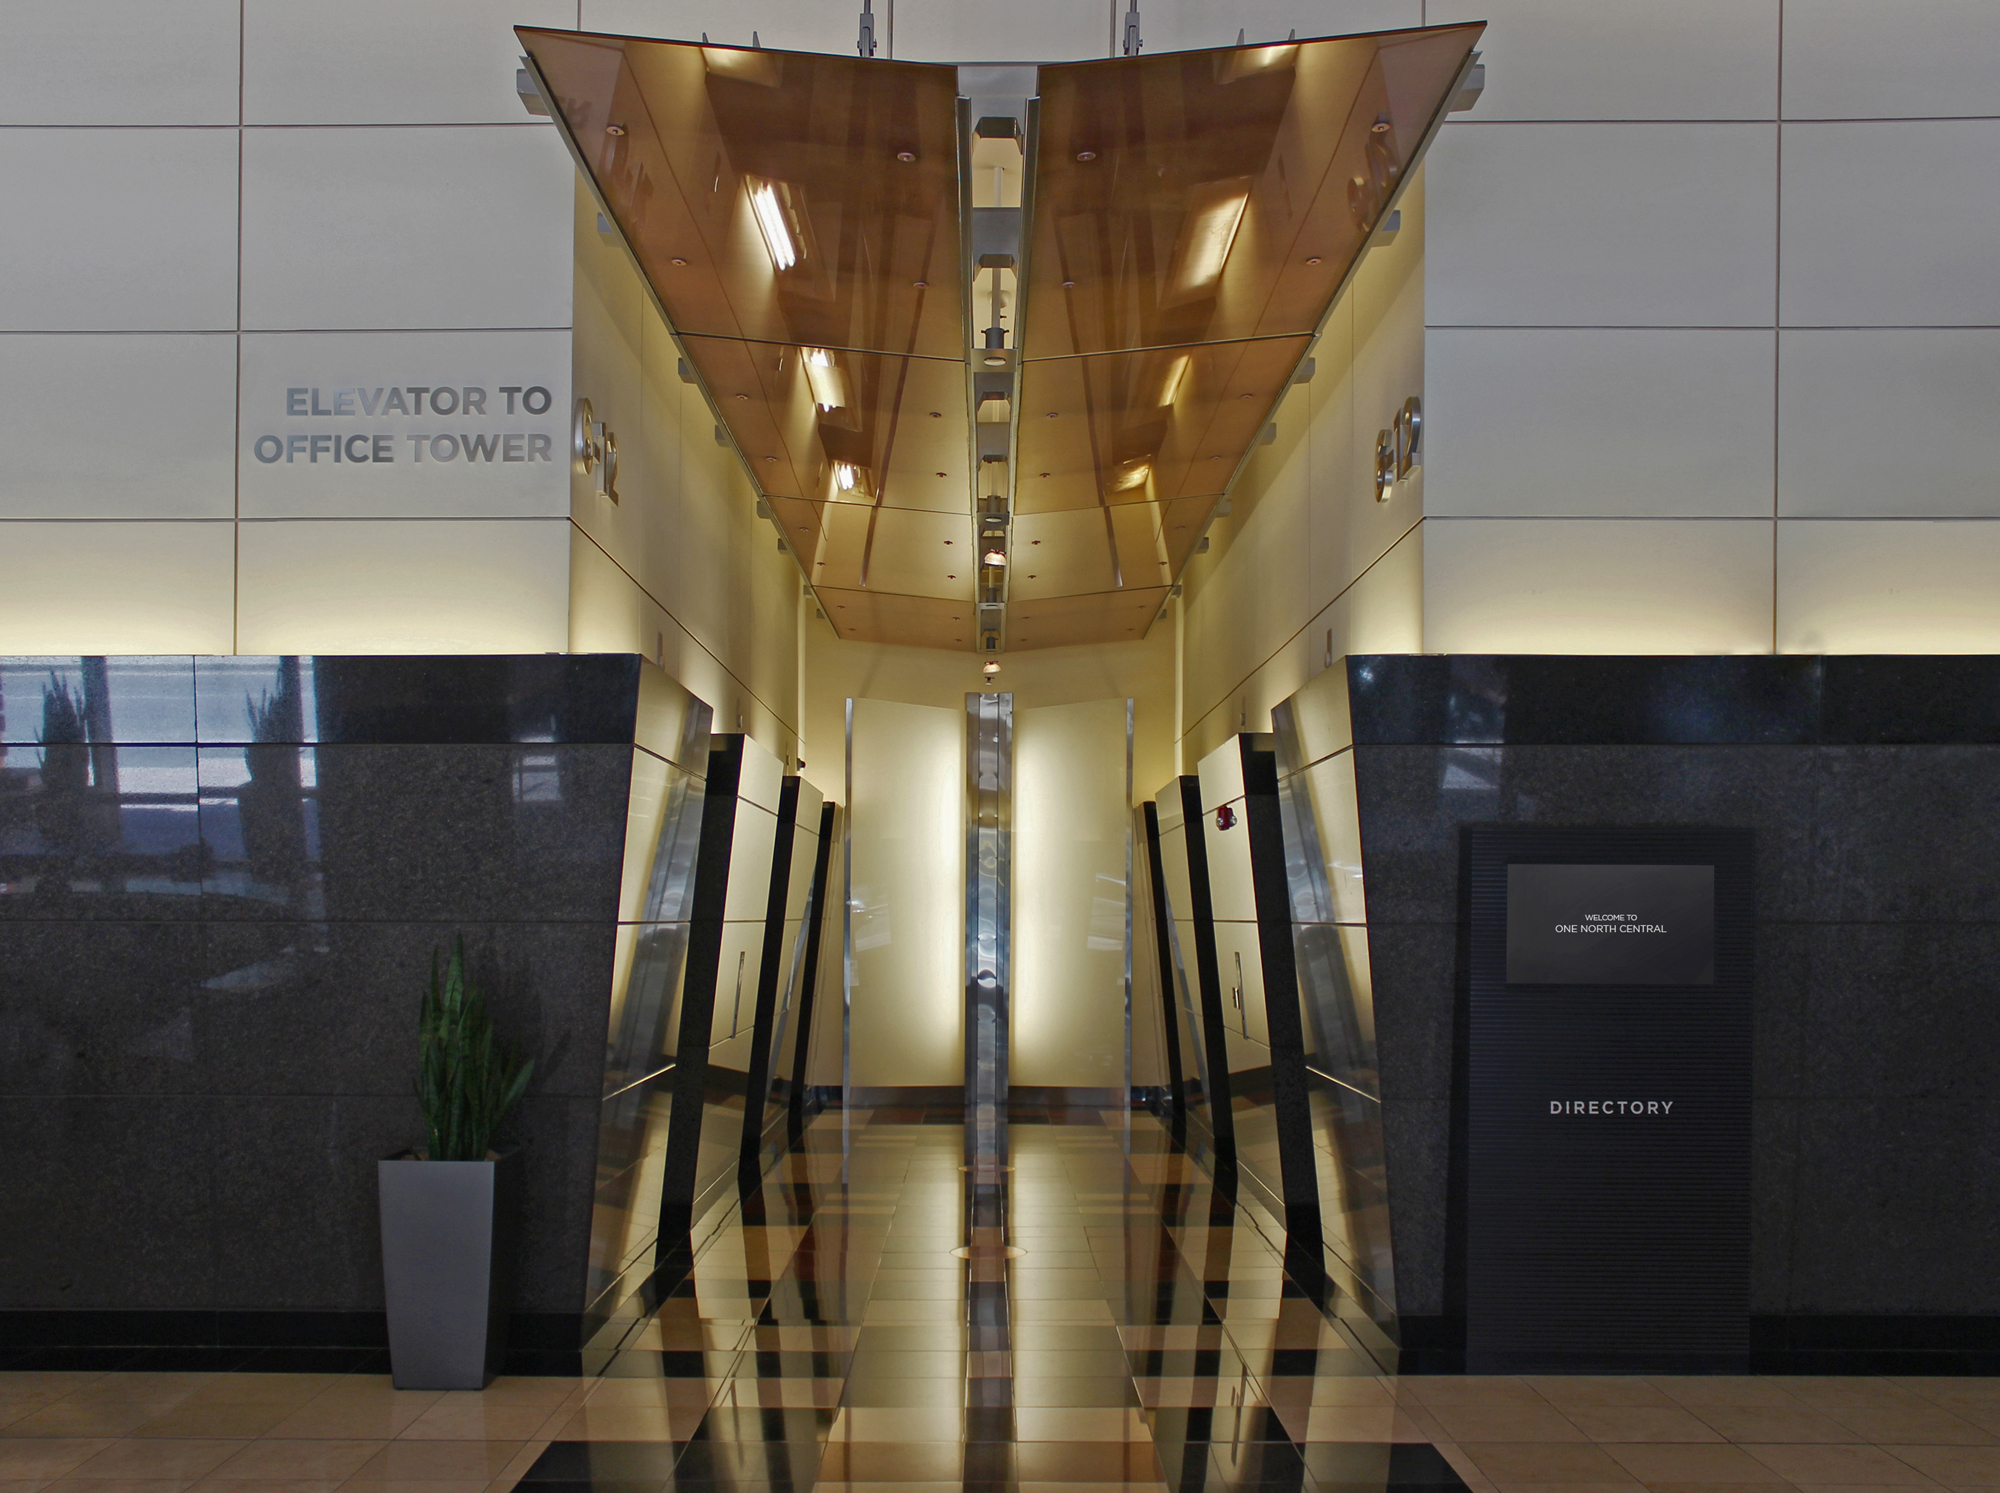 The lobby's visitors are directed using custom fabricated wayfinding elements.